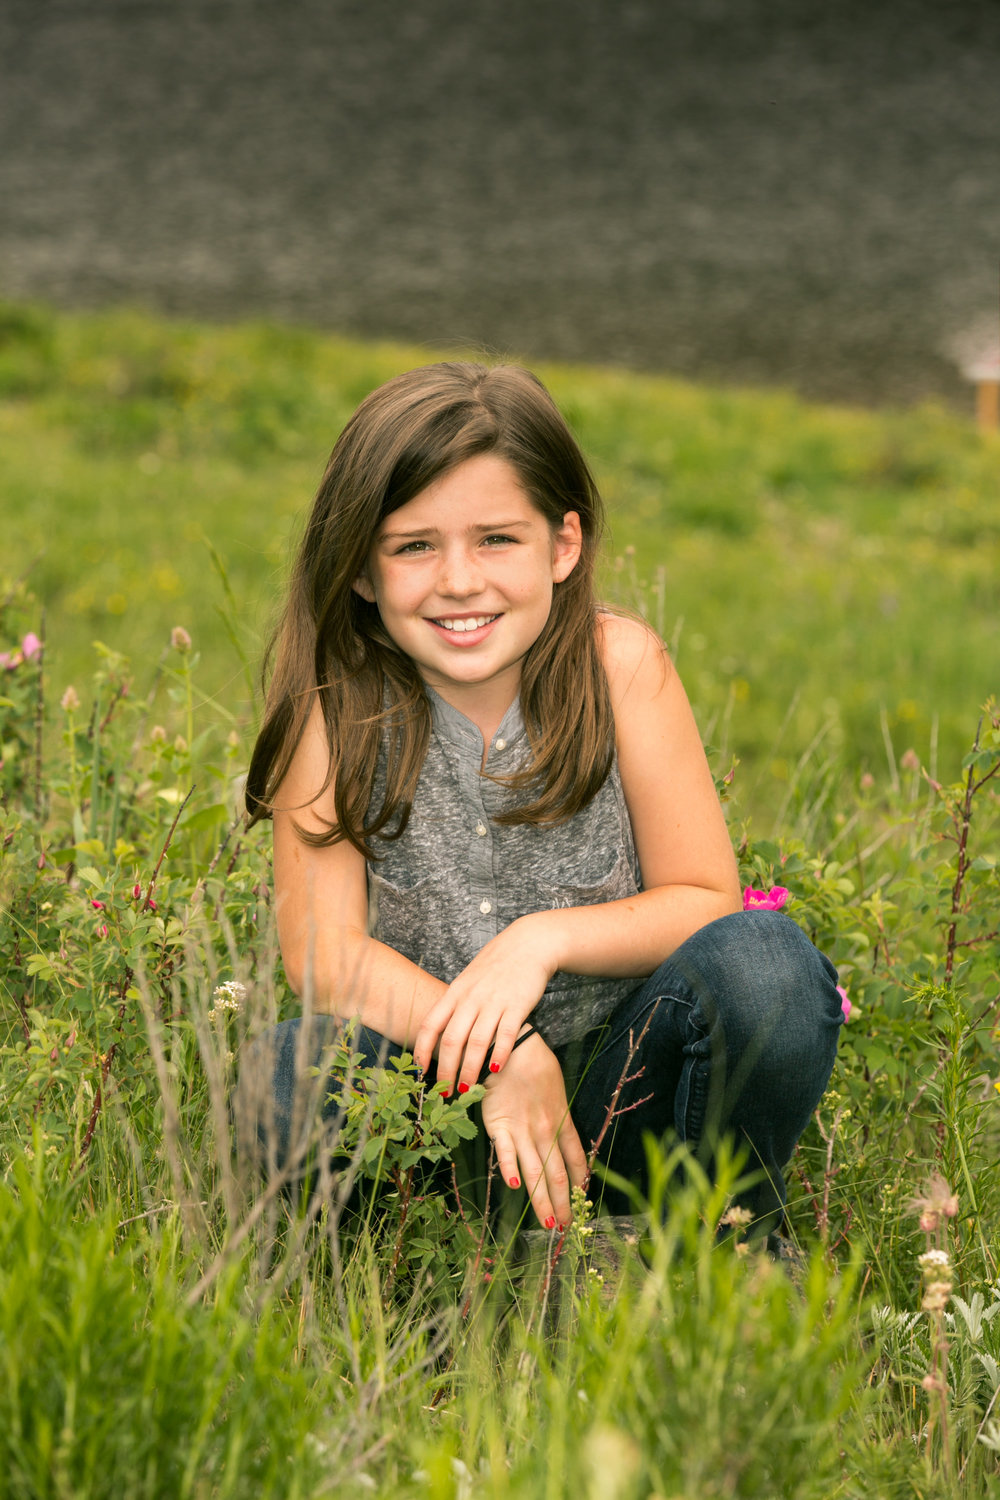 best-photographer-childrens-portraits-vail-Axelphoto.jpg